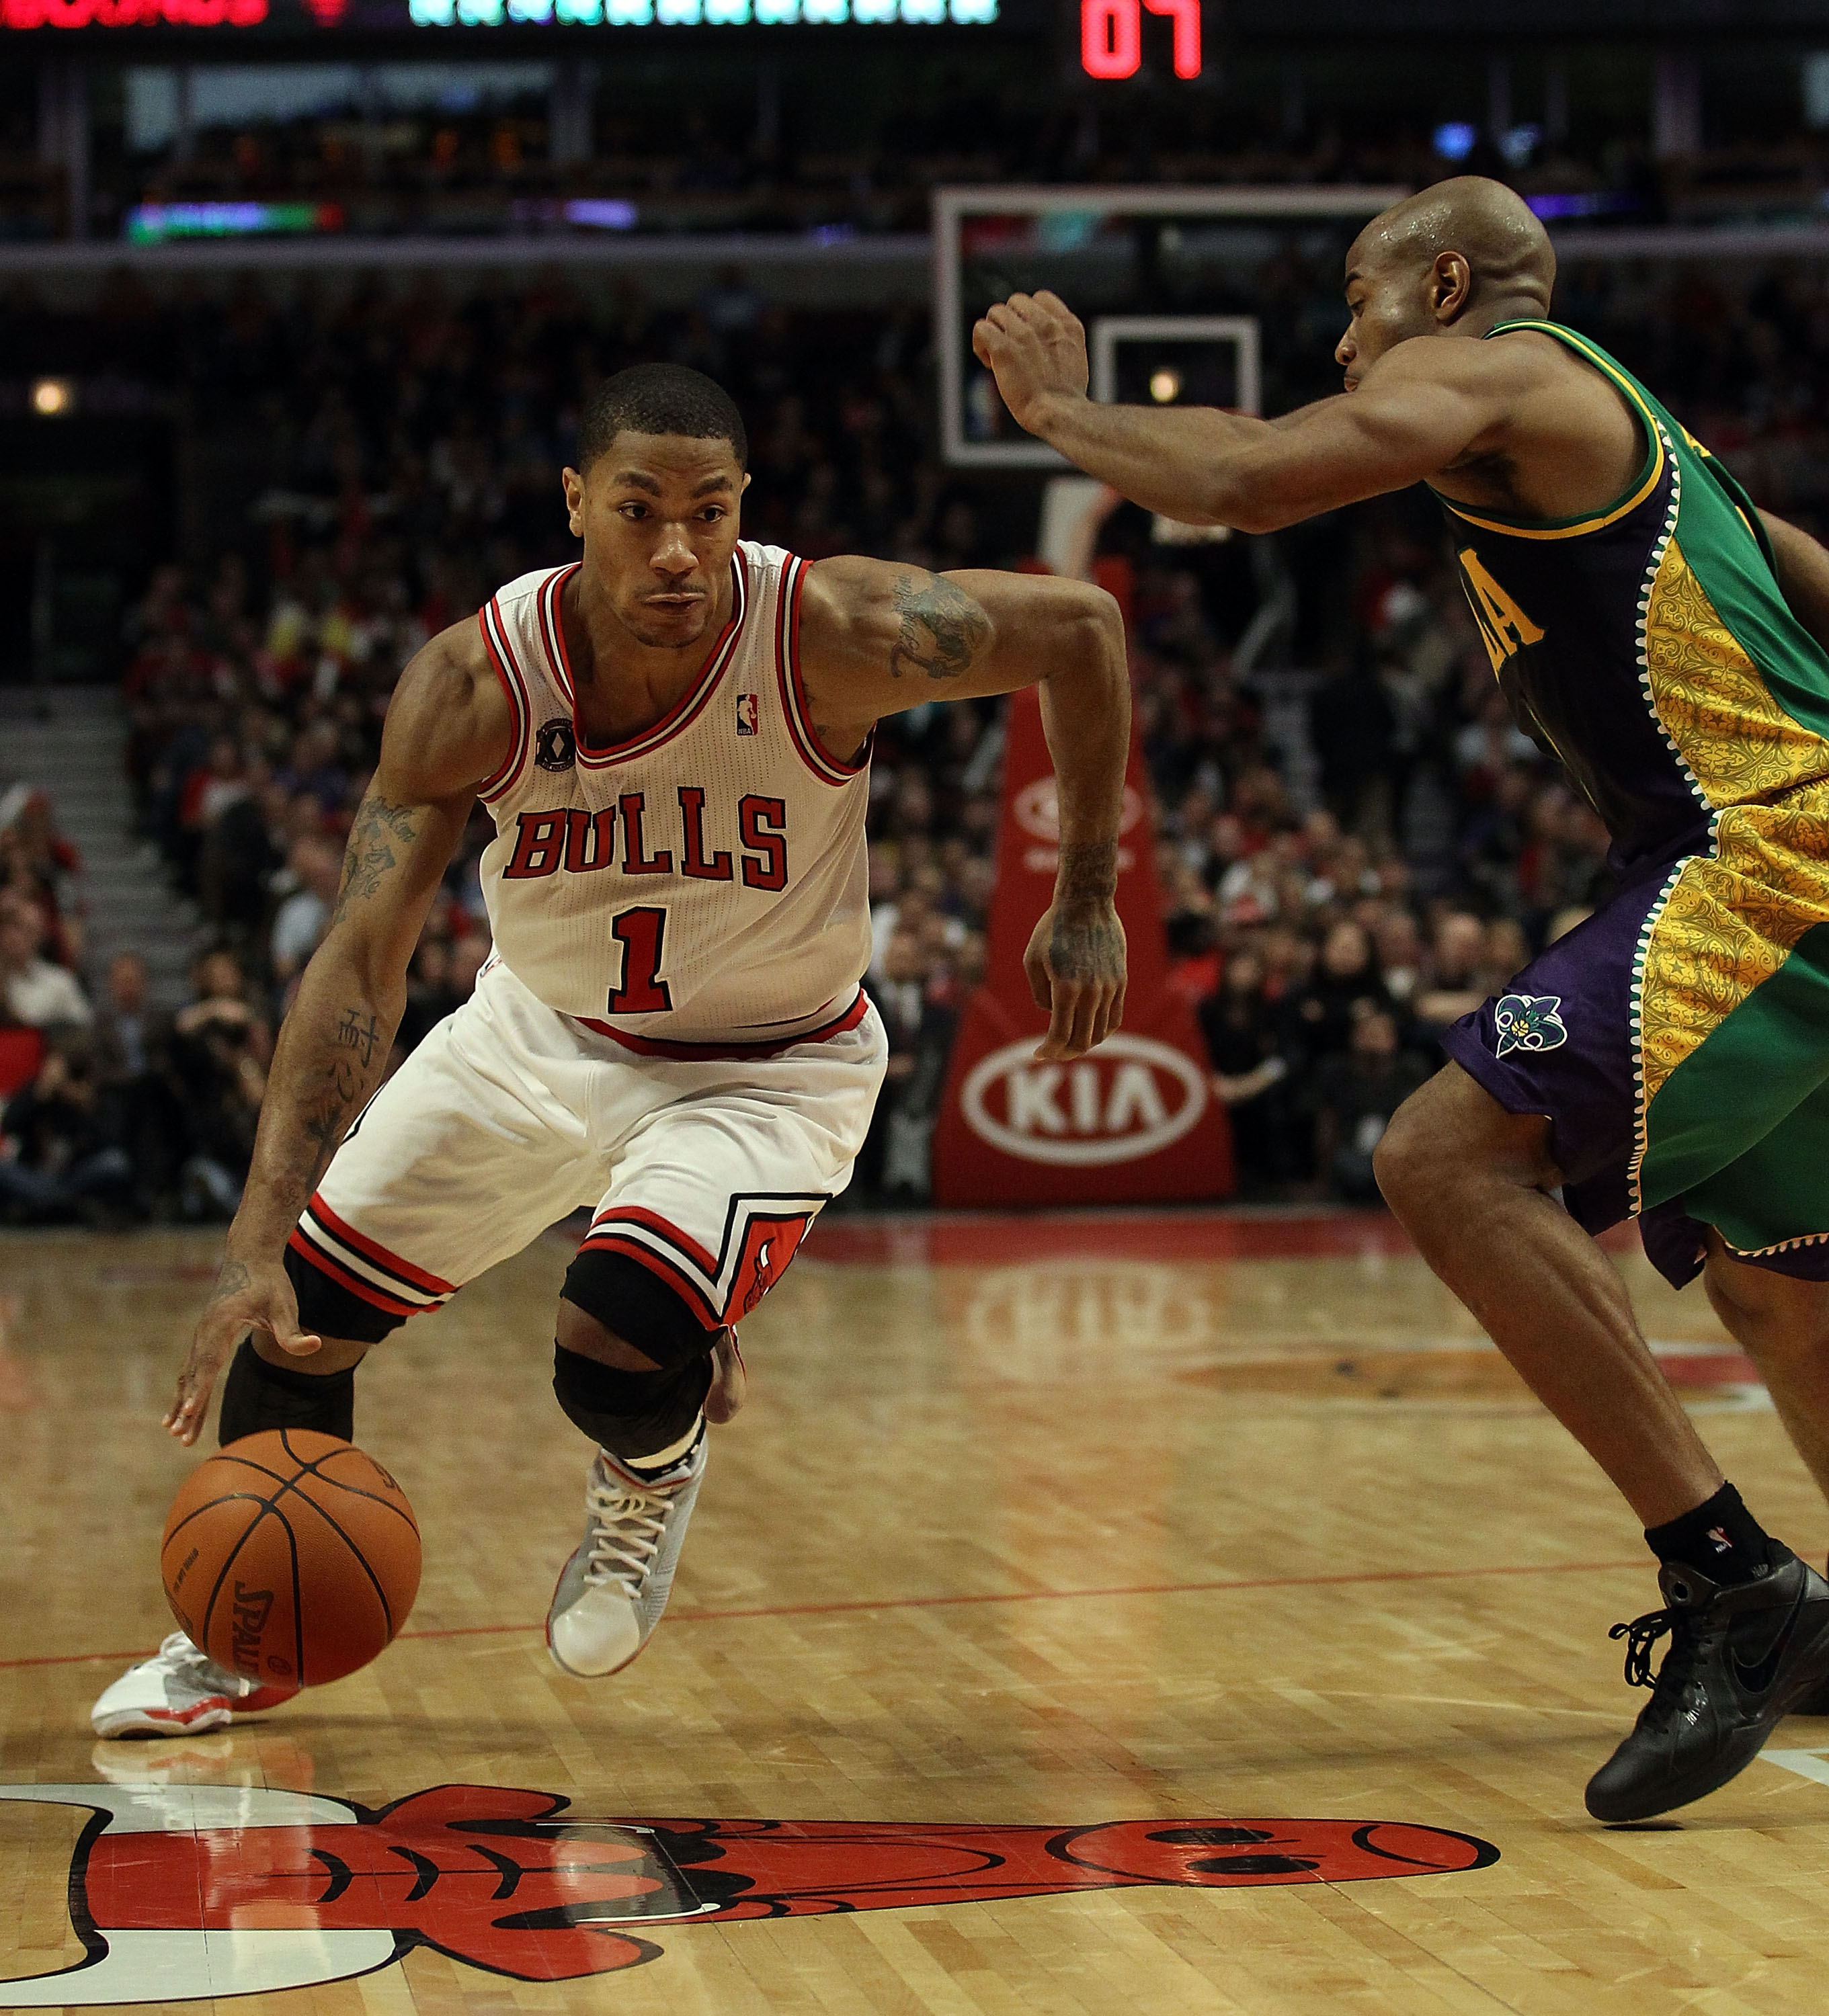 CHICAGO, IL - MARCH 07: Derrick Rose #1 of the Chicago Bulls drives against Jarrett Jack #2 of the New Orleans Hornets at the United Center on March 7, 2011 in Chicago, Illinois. The Bulls defeated the Hornets 85-77. NOTE TO USER: User expressly acknowled